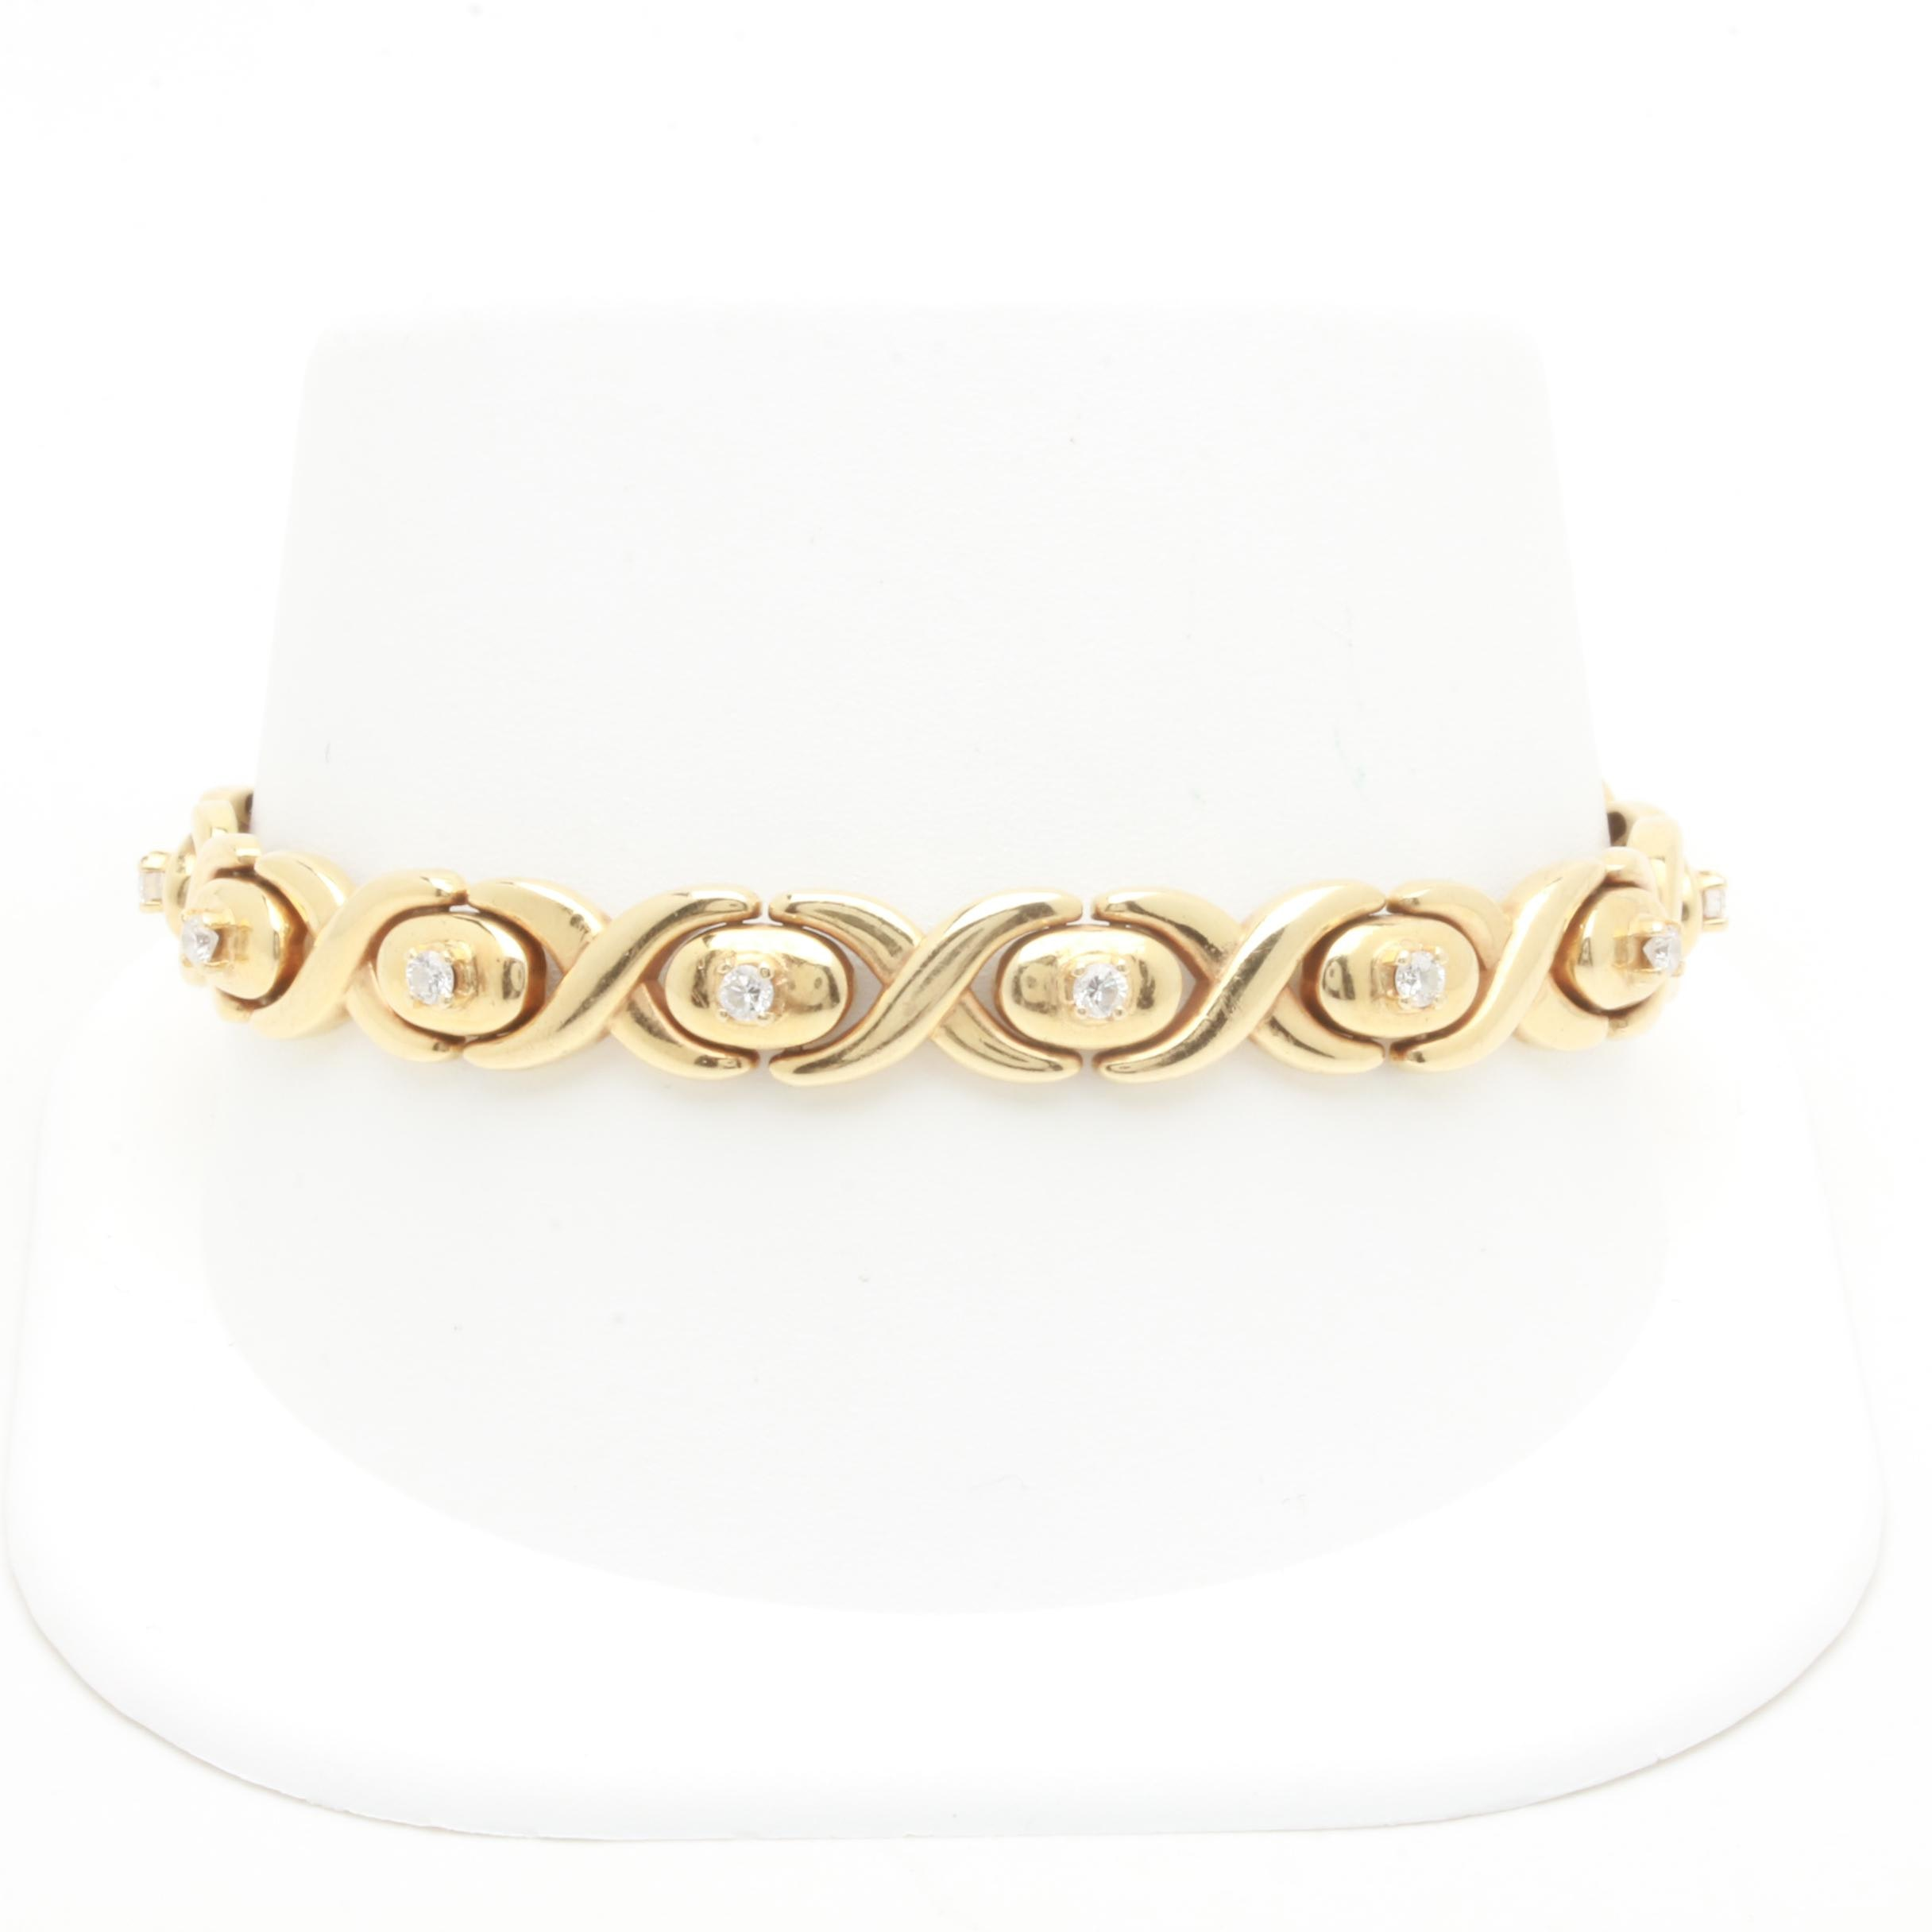 Italian 14K Yellow Gold Diamond Link Bracelet